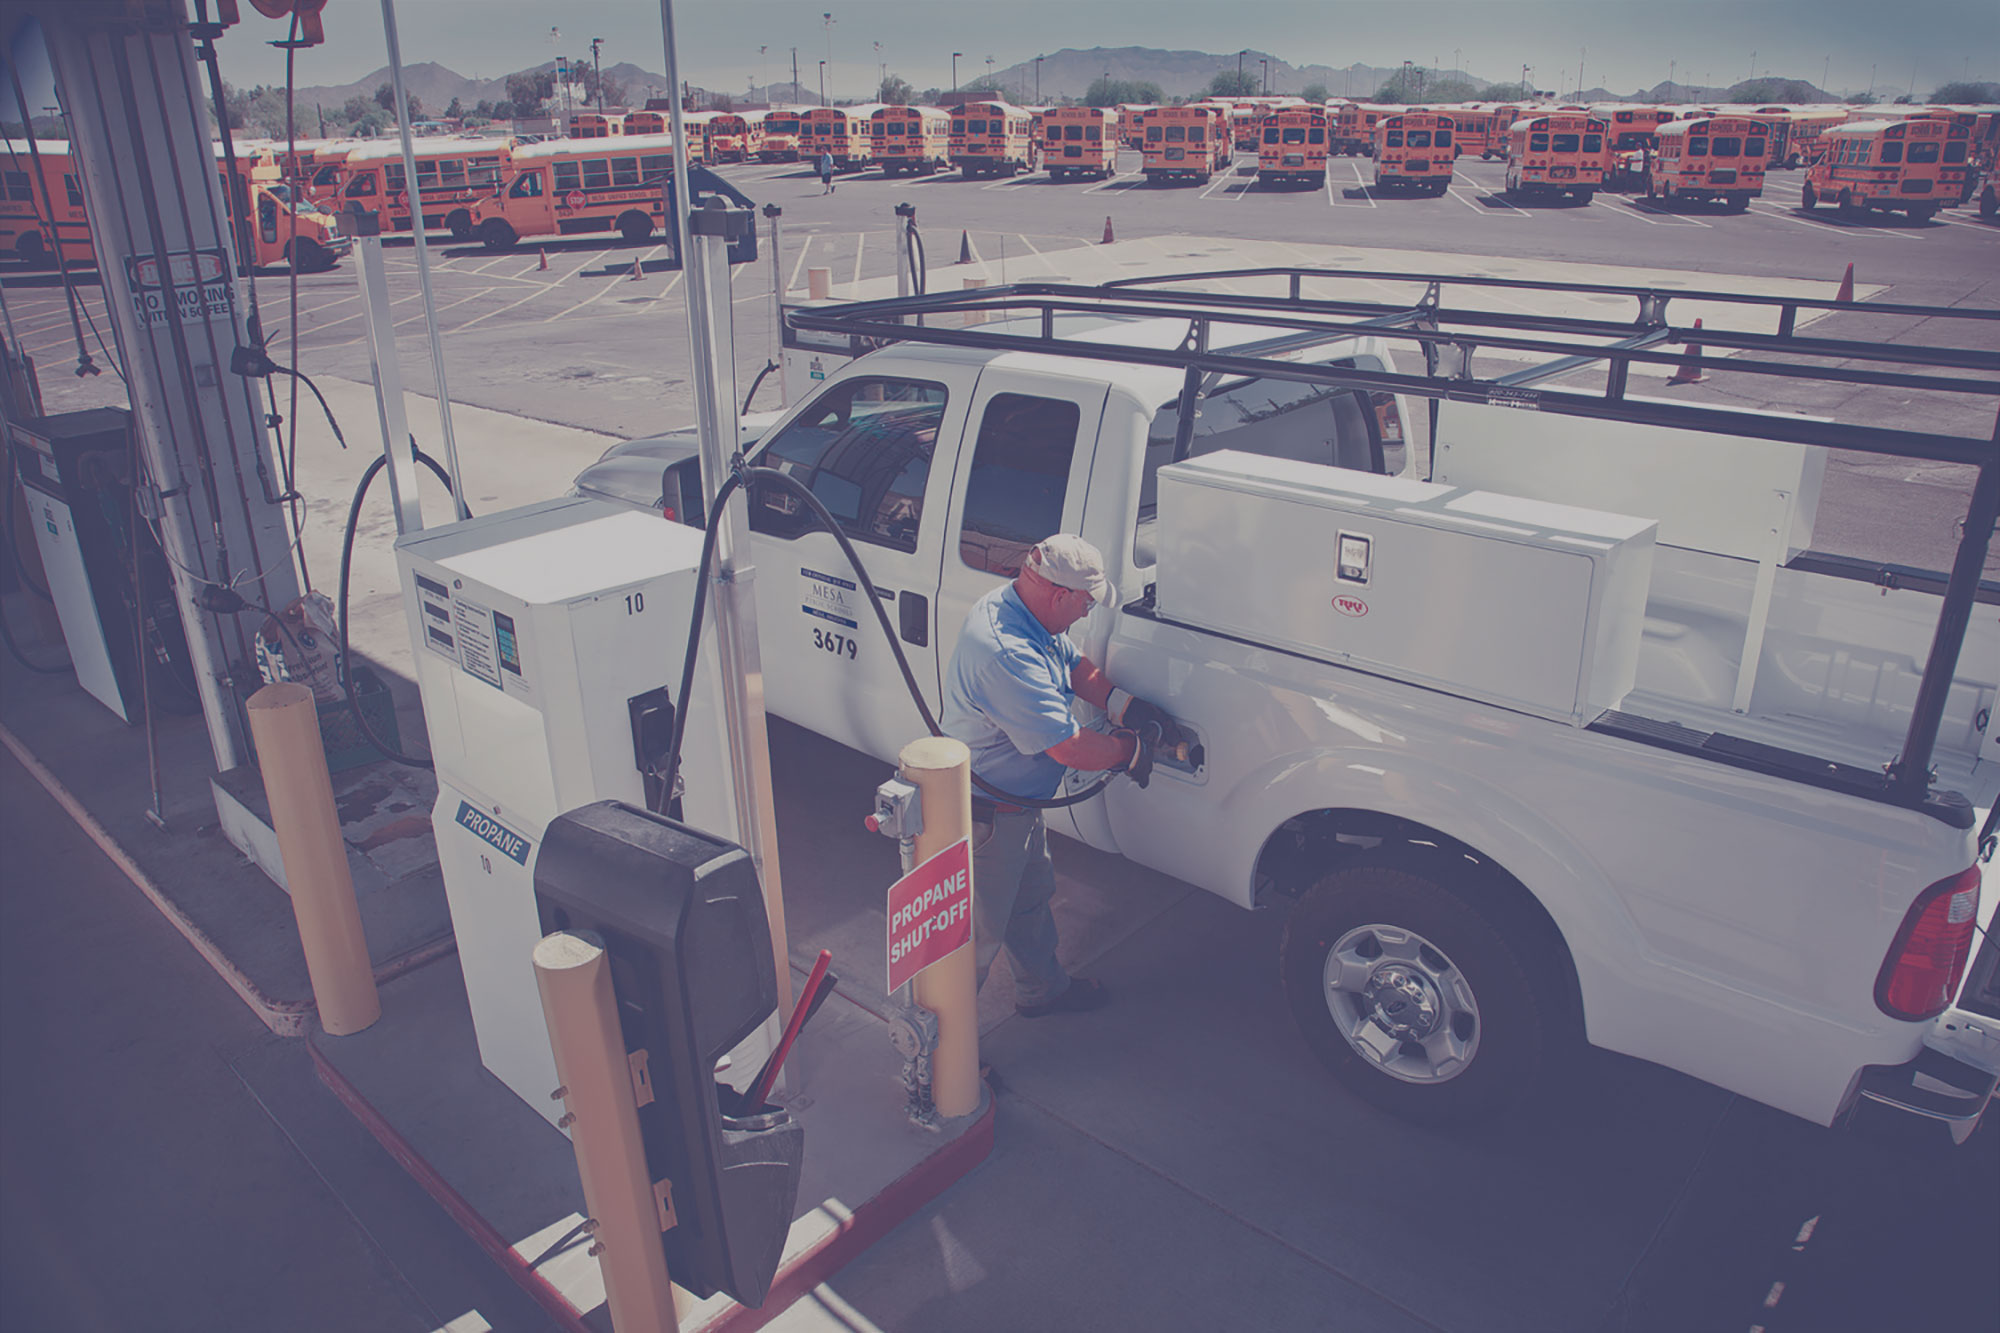 Man filling a pickup truck with propane autogas at a card lock station. There is a fleet of school buses in the background.